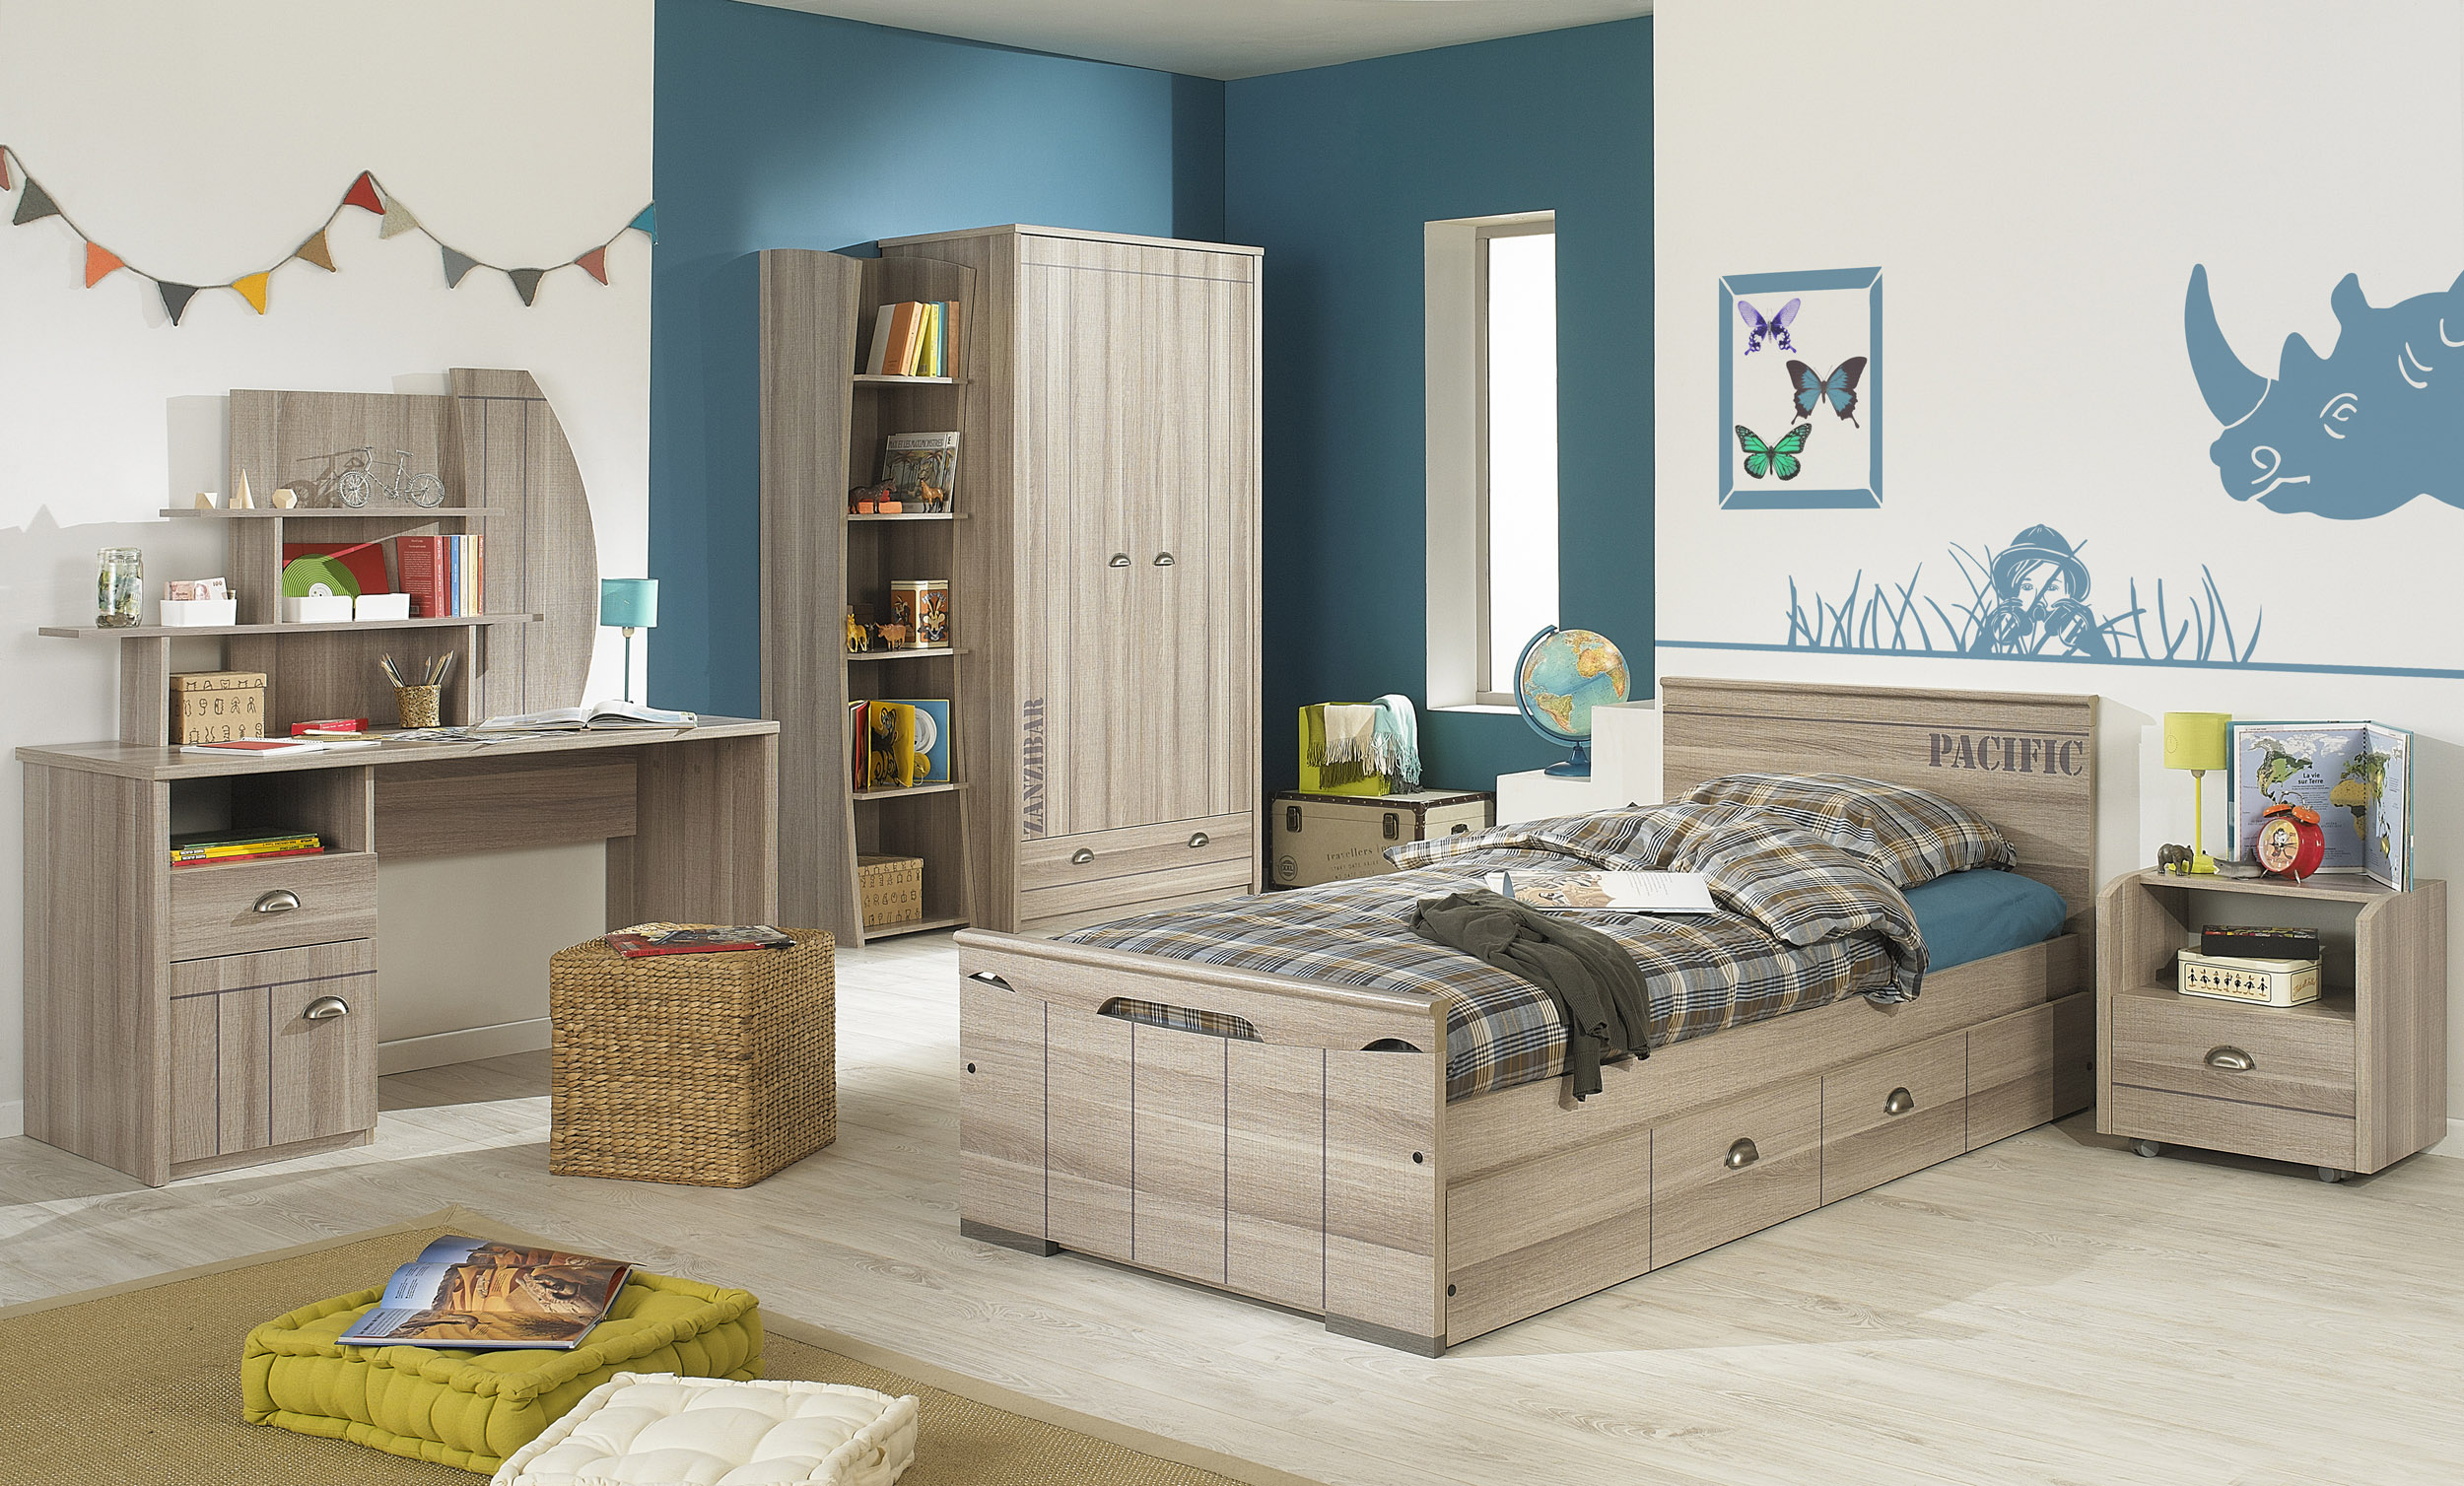 Ambiance chambre enfant - bebe confort axiss